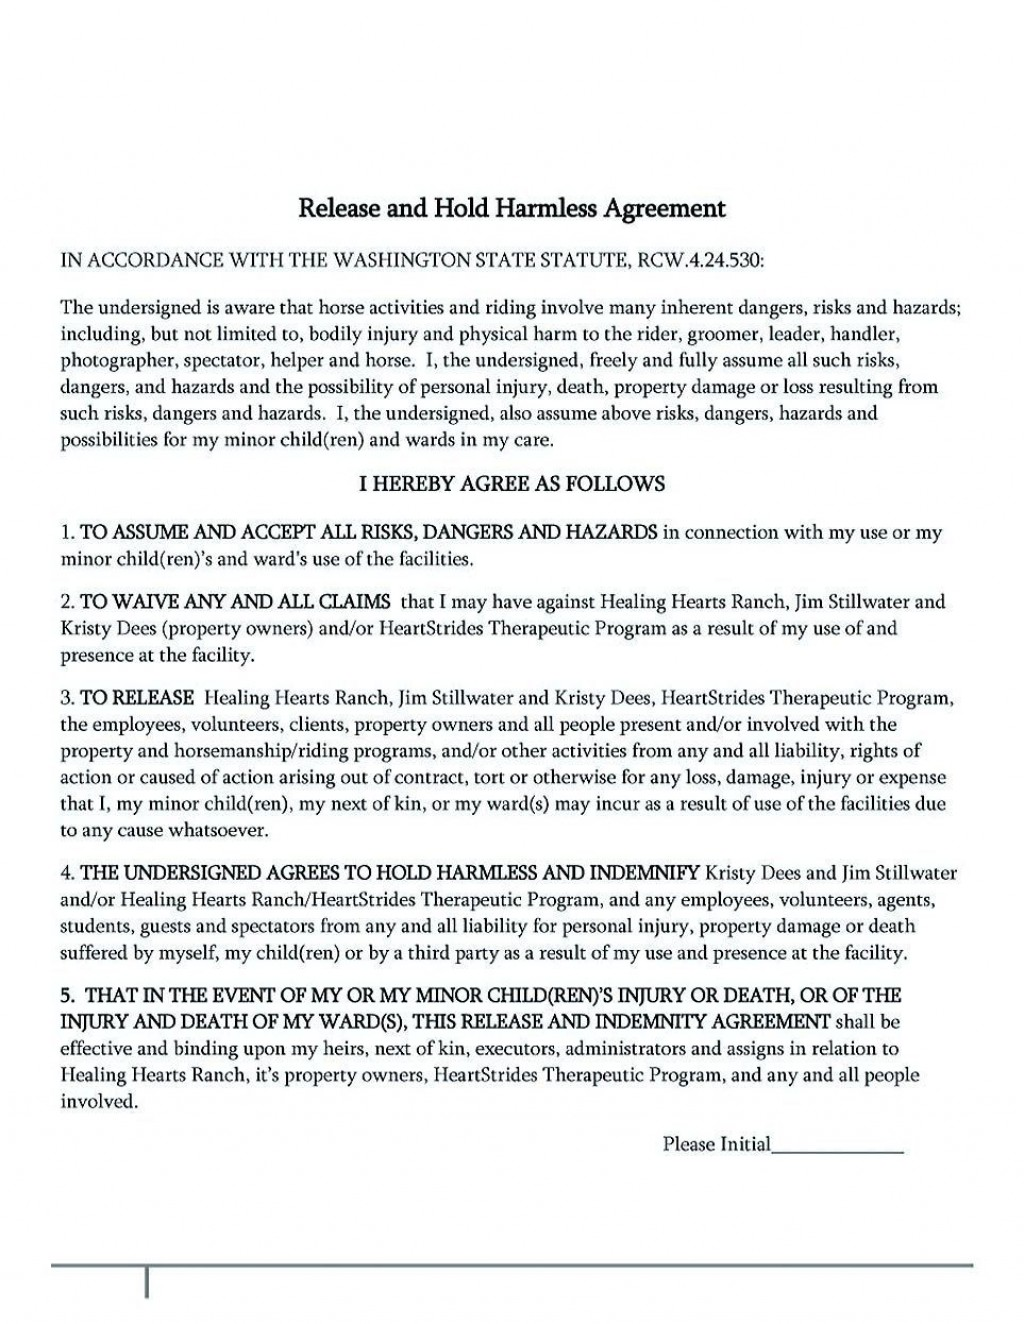 002 Amazing Hold Harmles Agreement Template Inspiration  Canada Word Free DownloadLarge